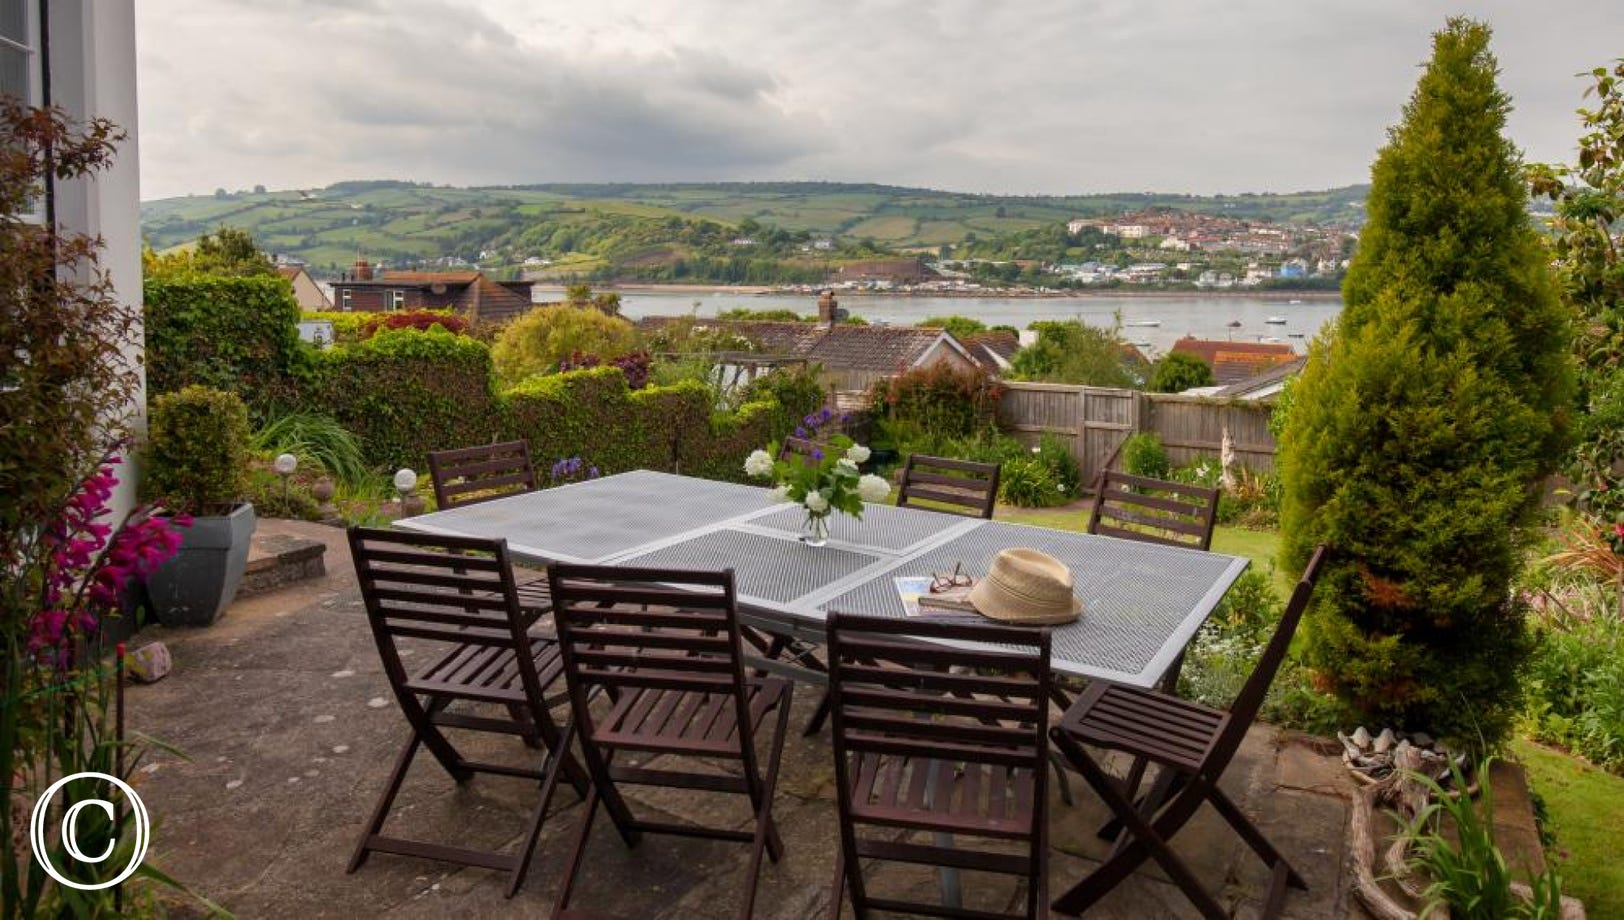 Large table & chairs on the terrace, in a sheltered terrace spot with gorgeous views.